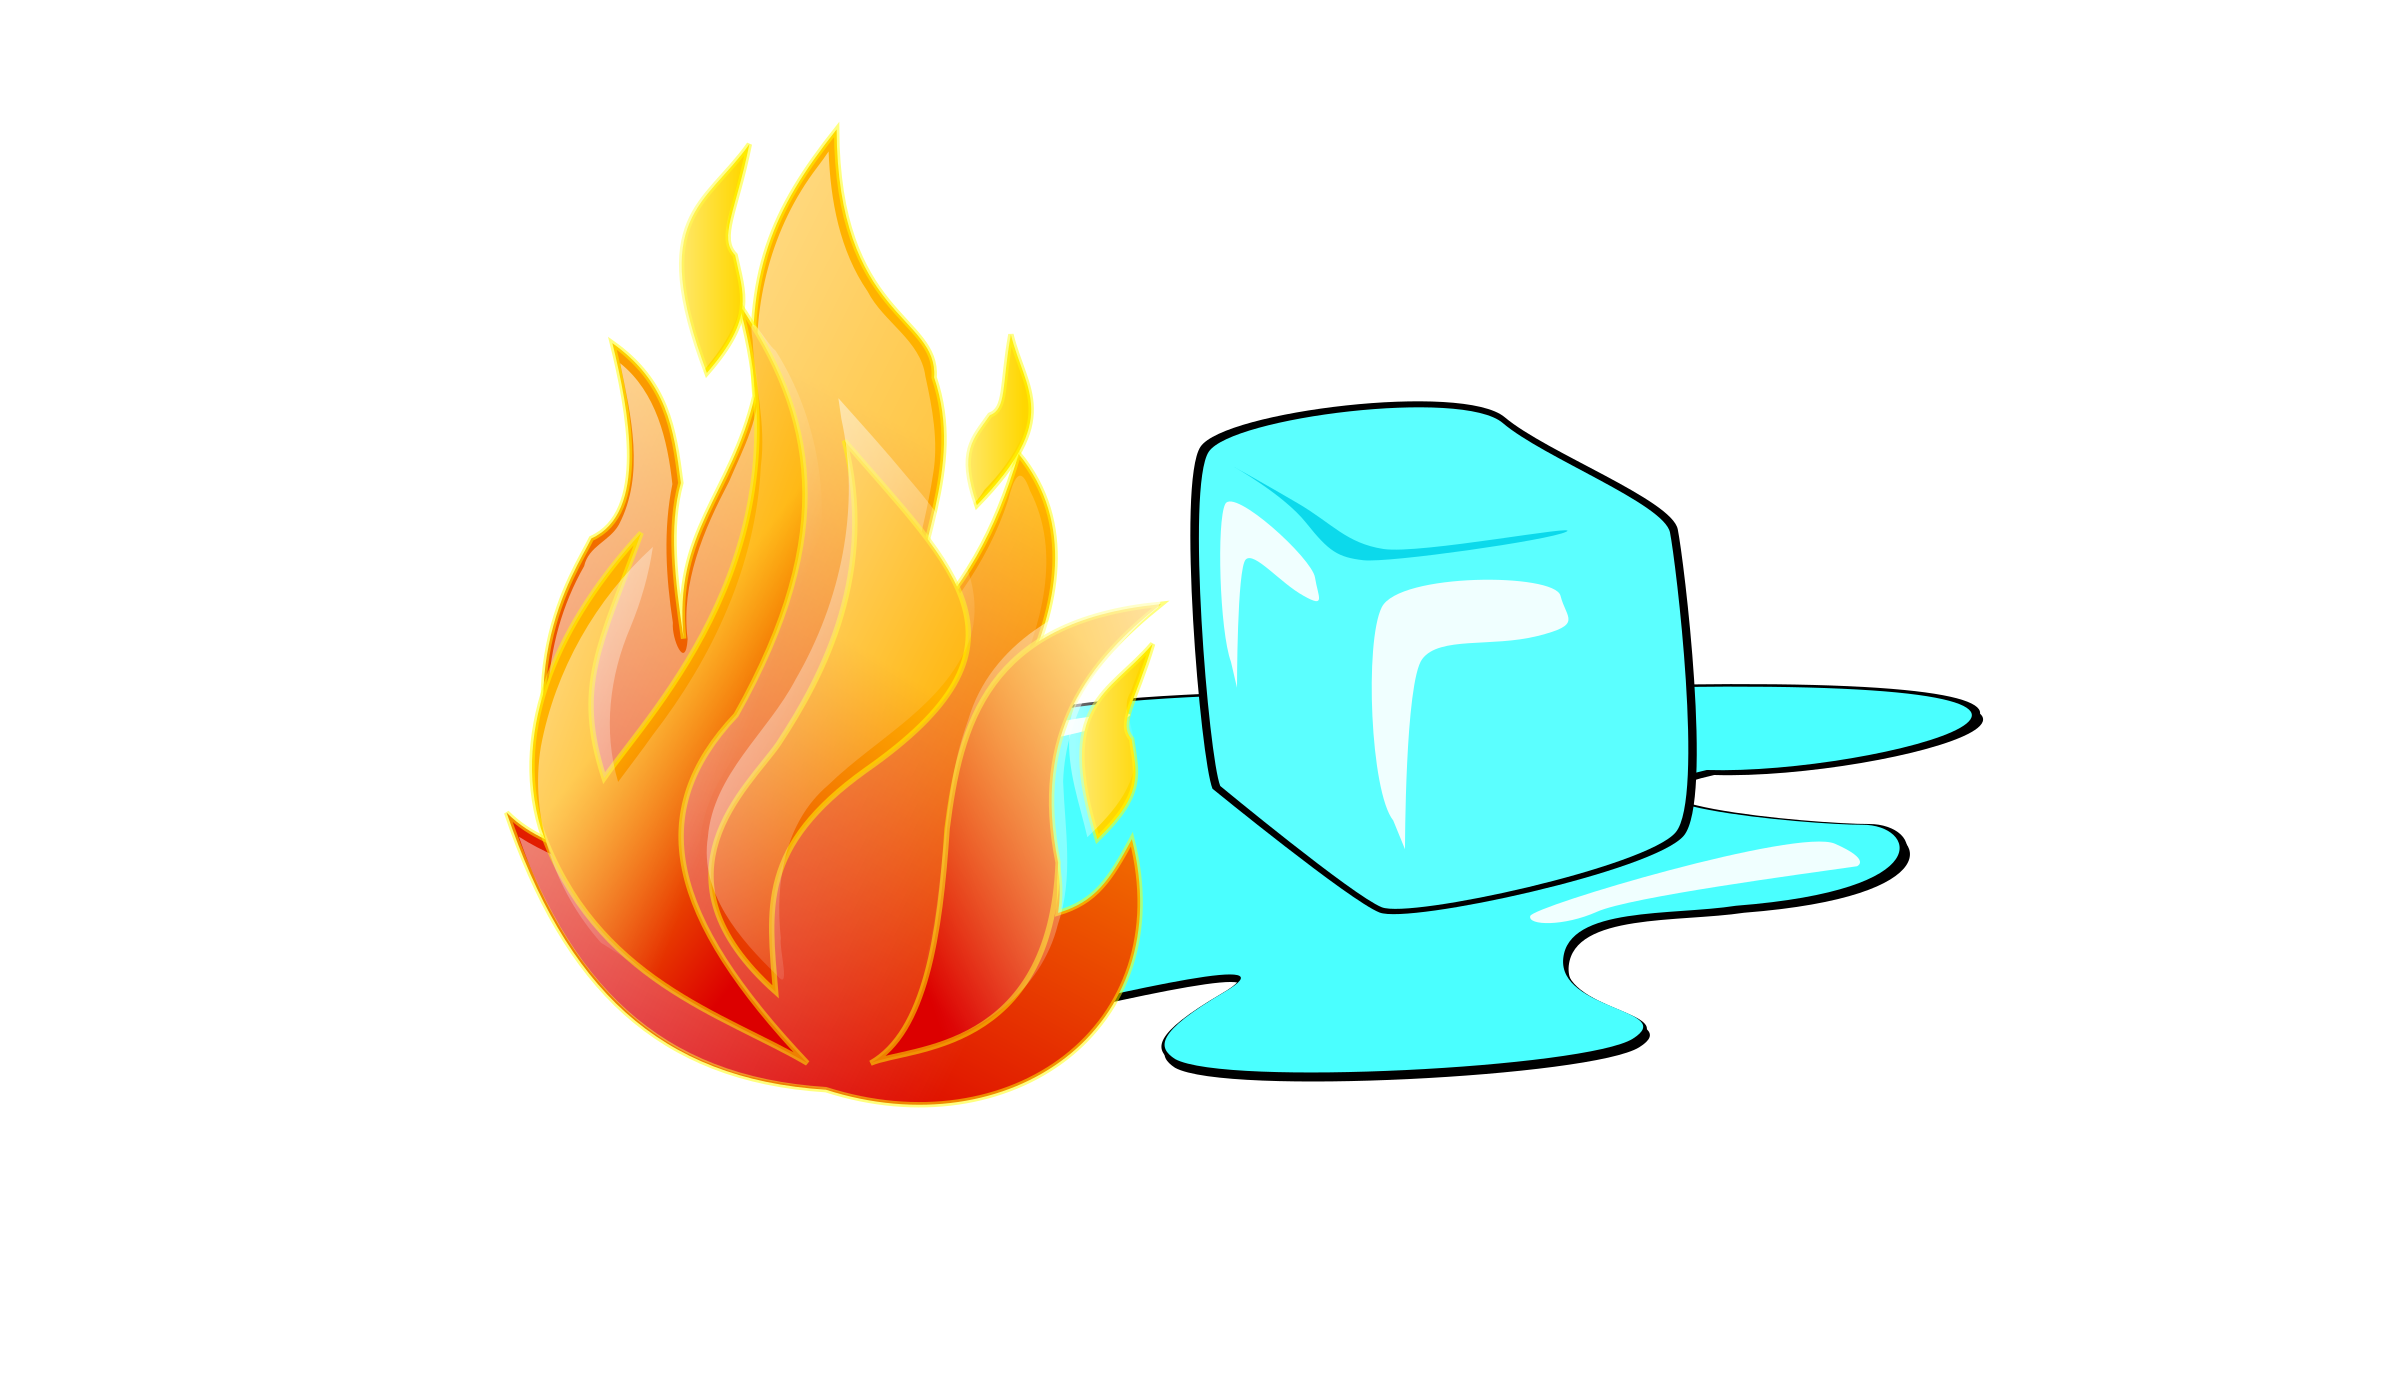 Fire And Ice clipart #10, Download drawings